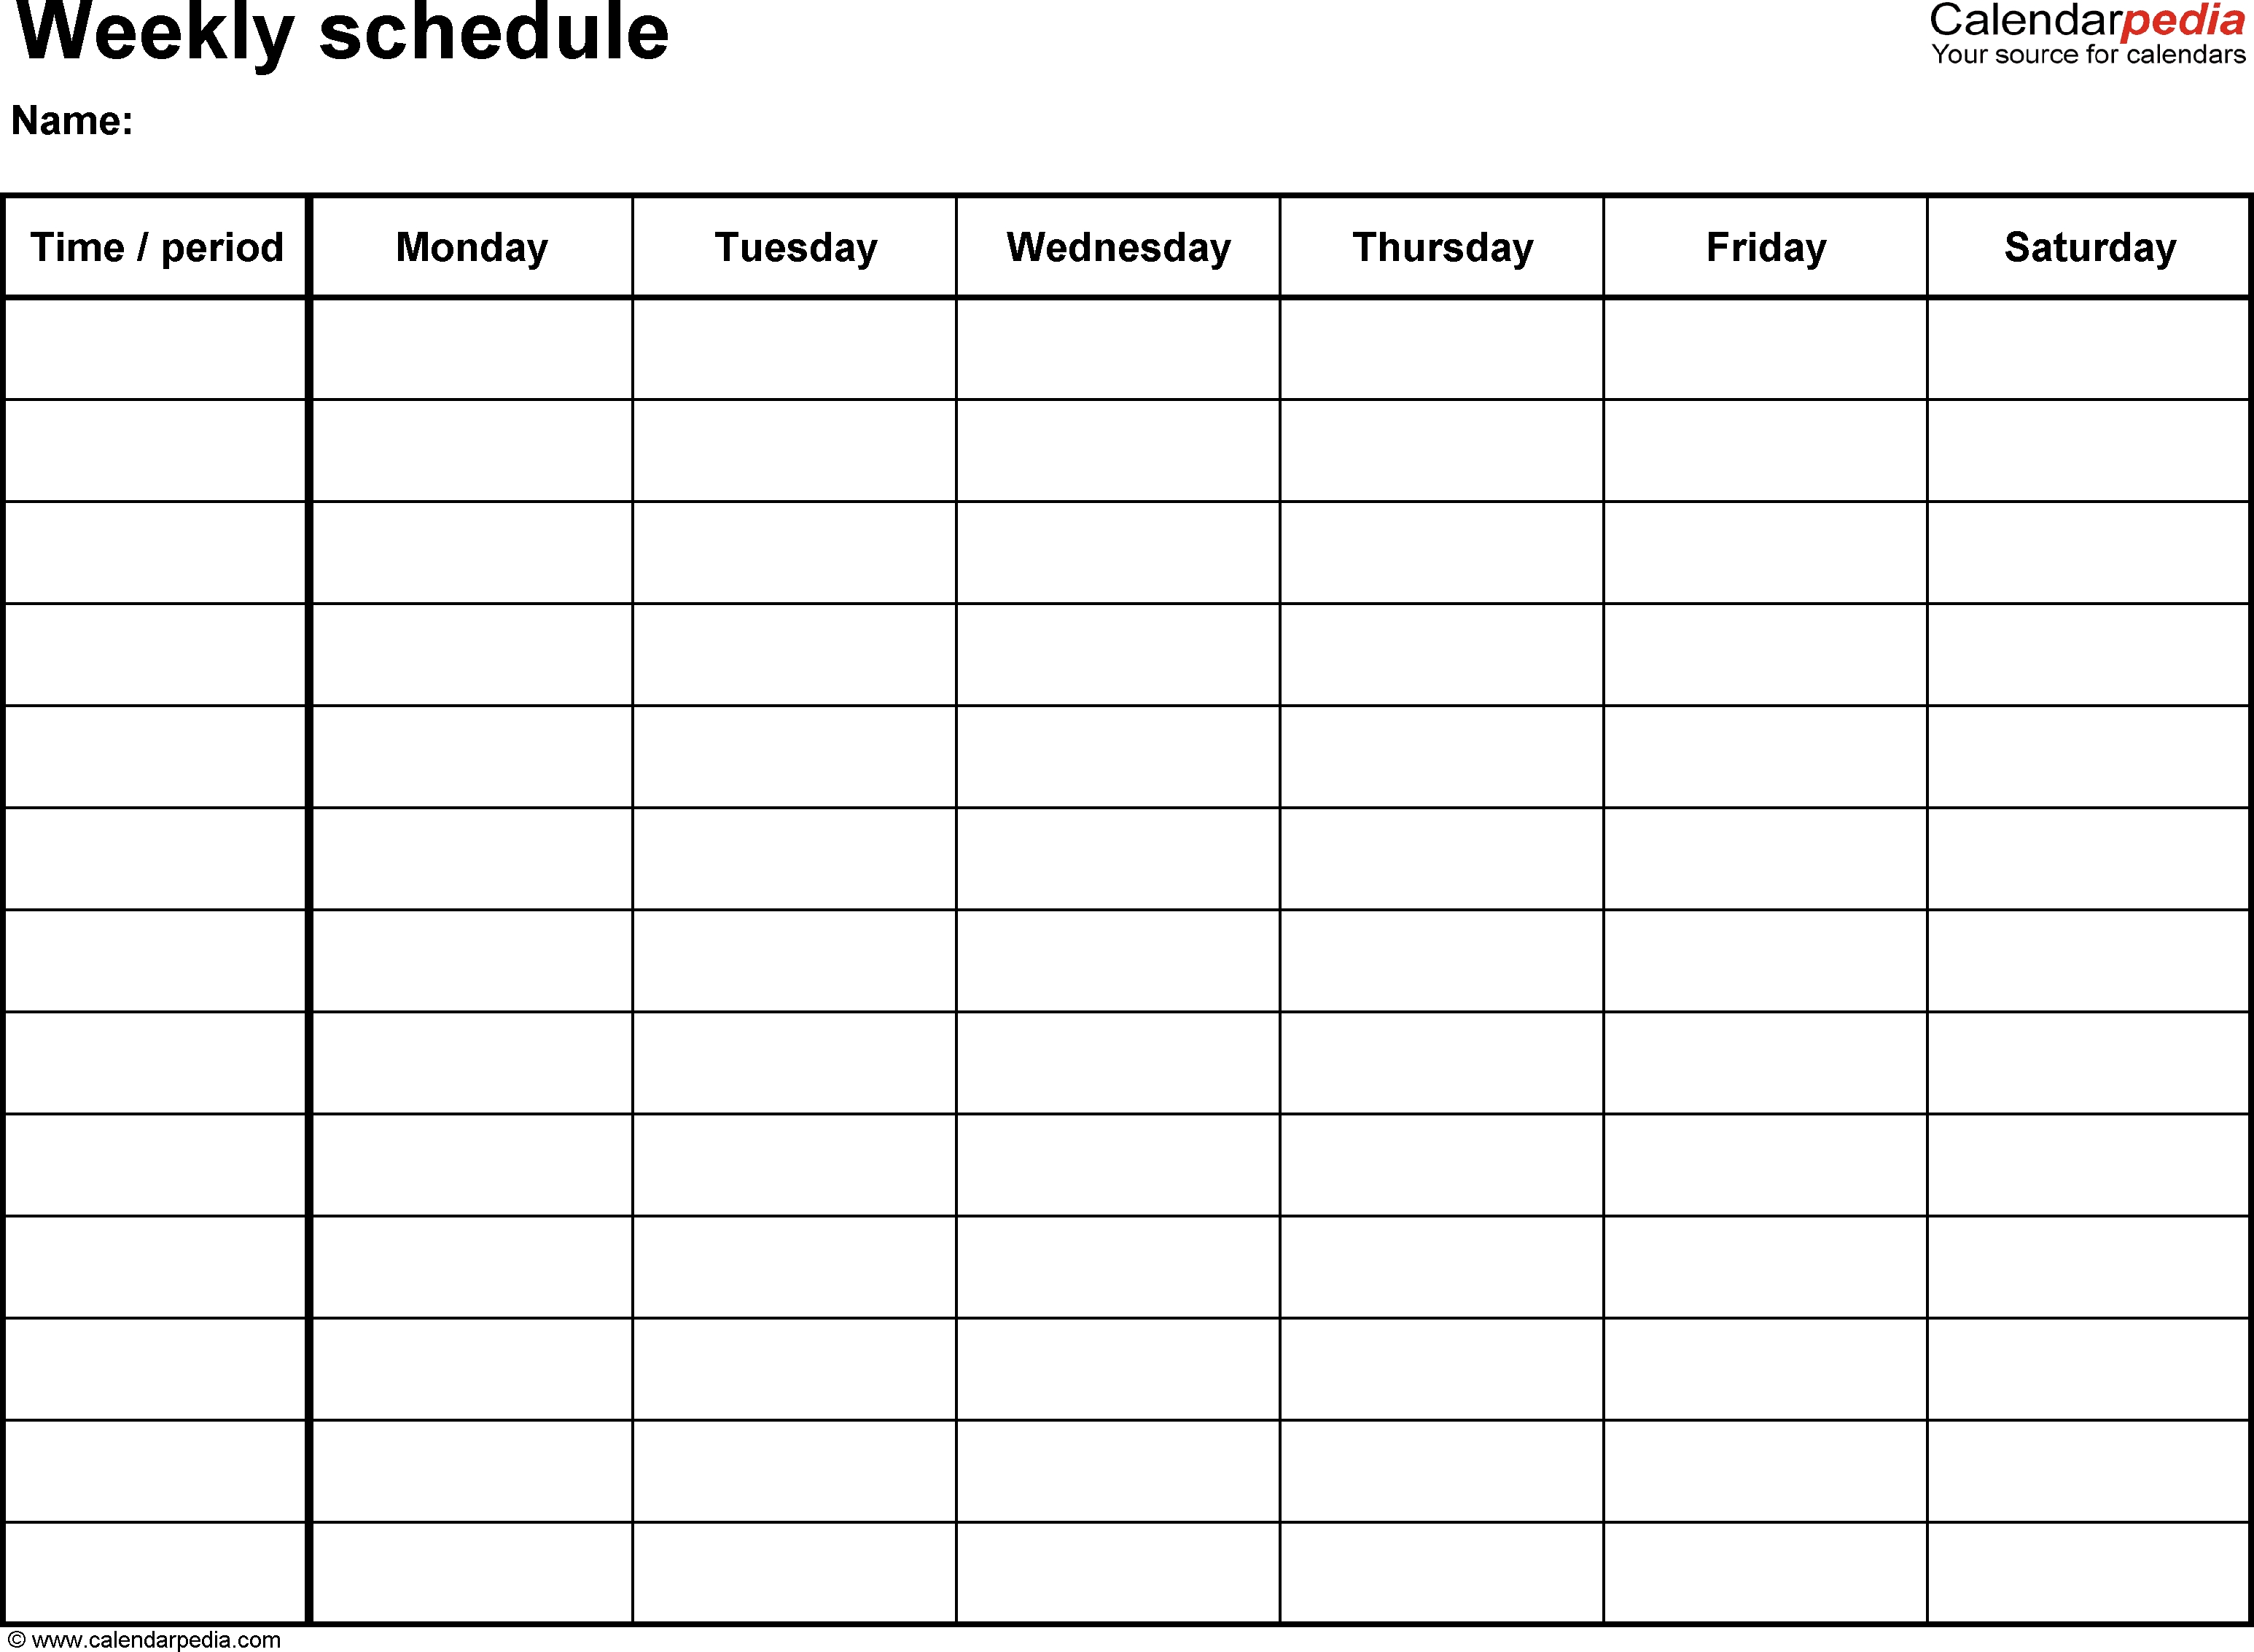 Weekly Schedule Template For Word Version 8: Landscape, 1